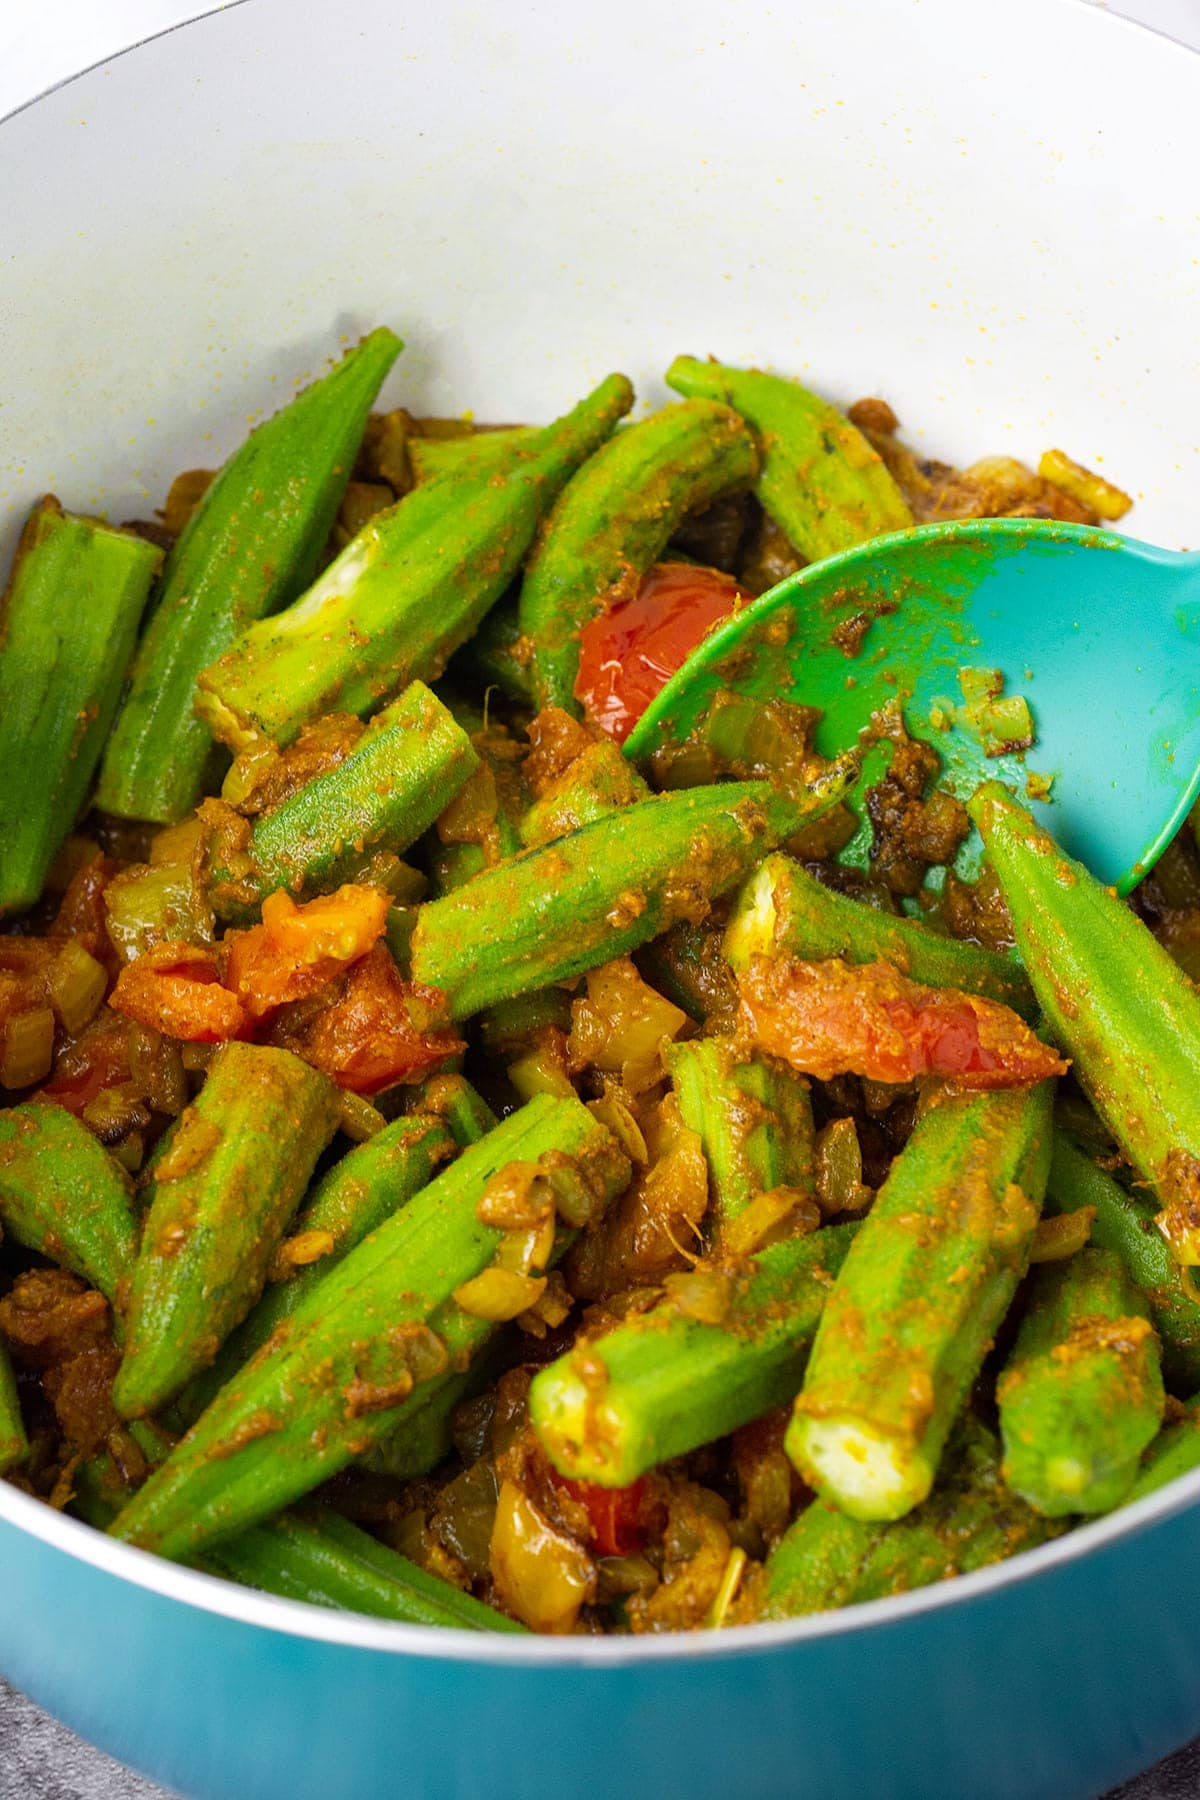 sauteed okra with onion, garlic, ginger, tomato in a large blue pot with a blue spoon